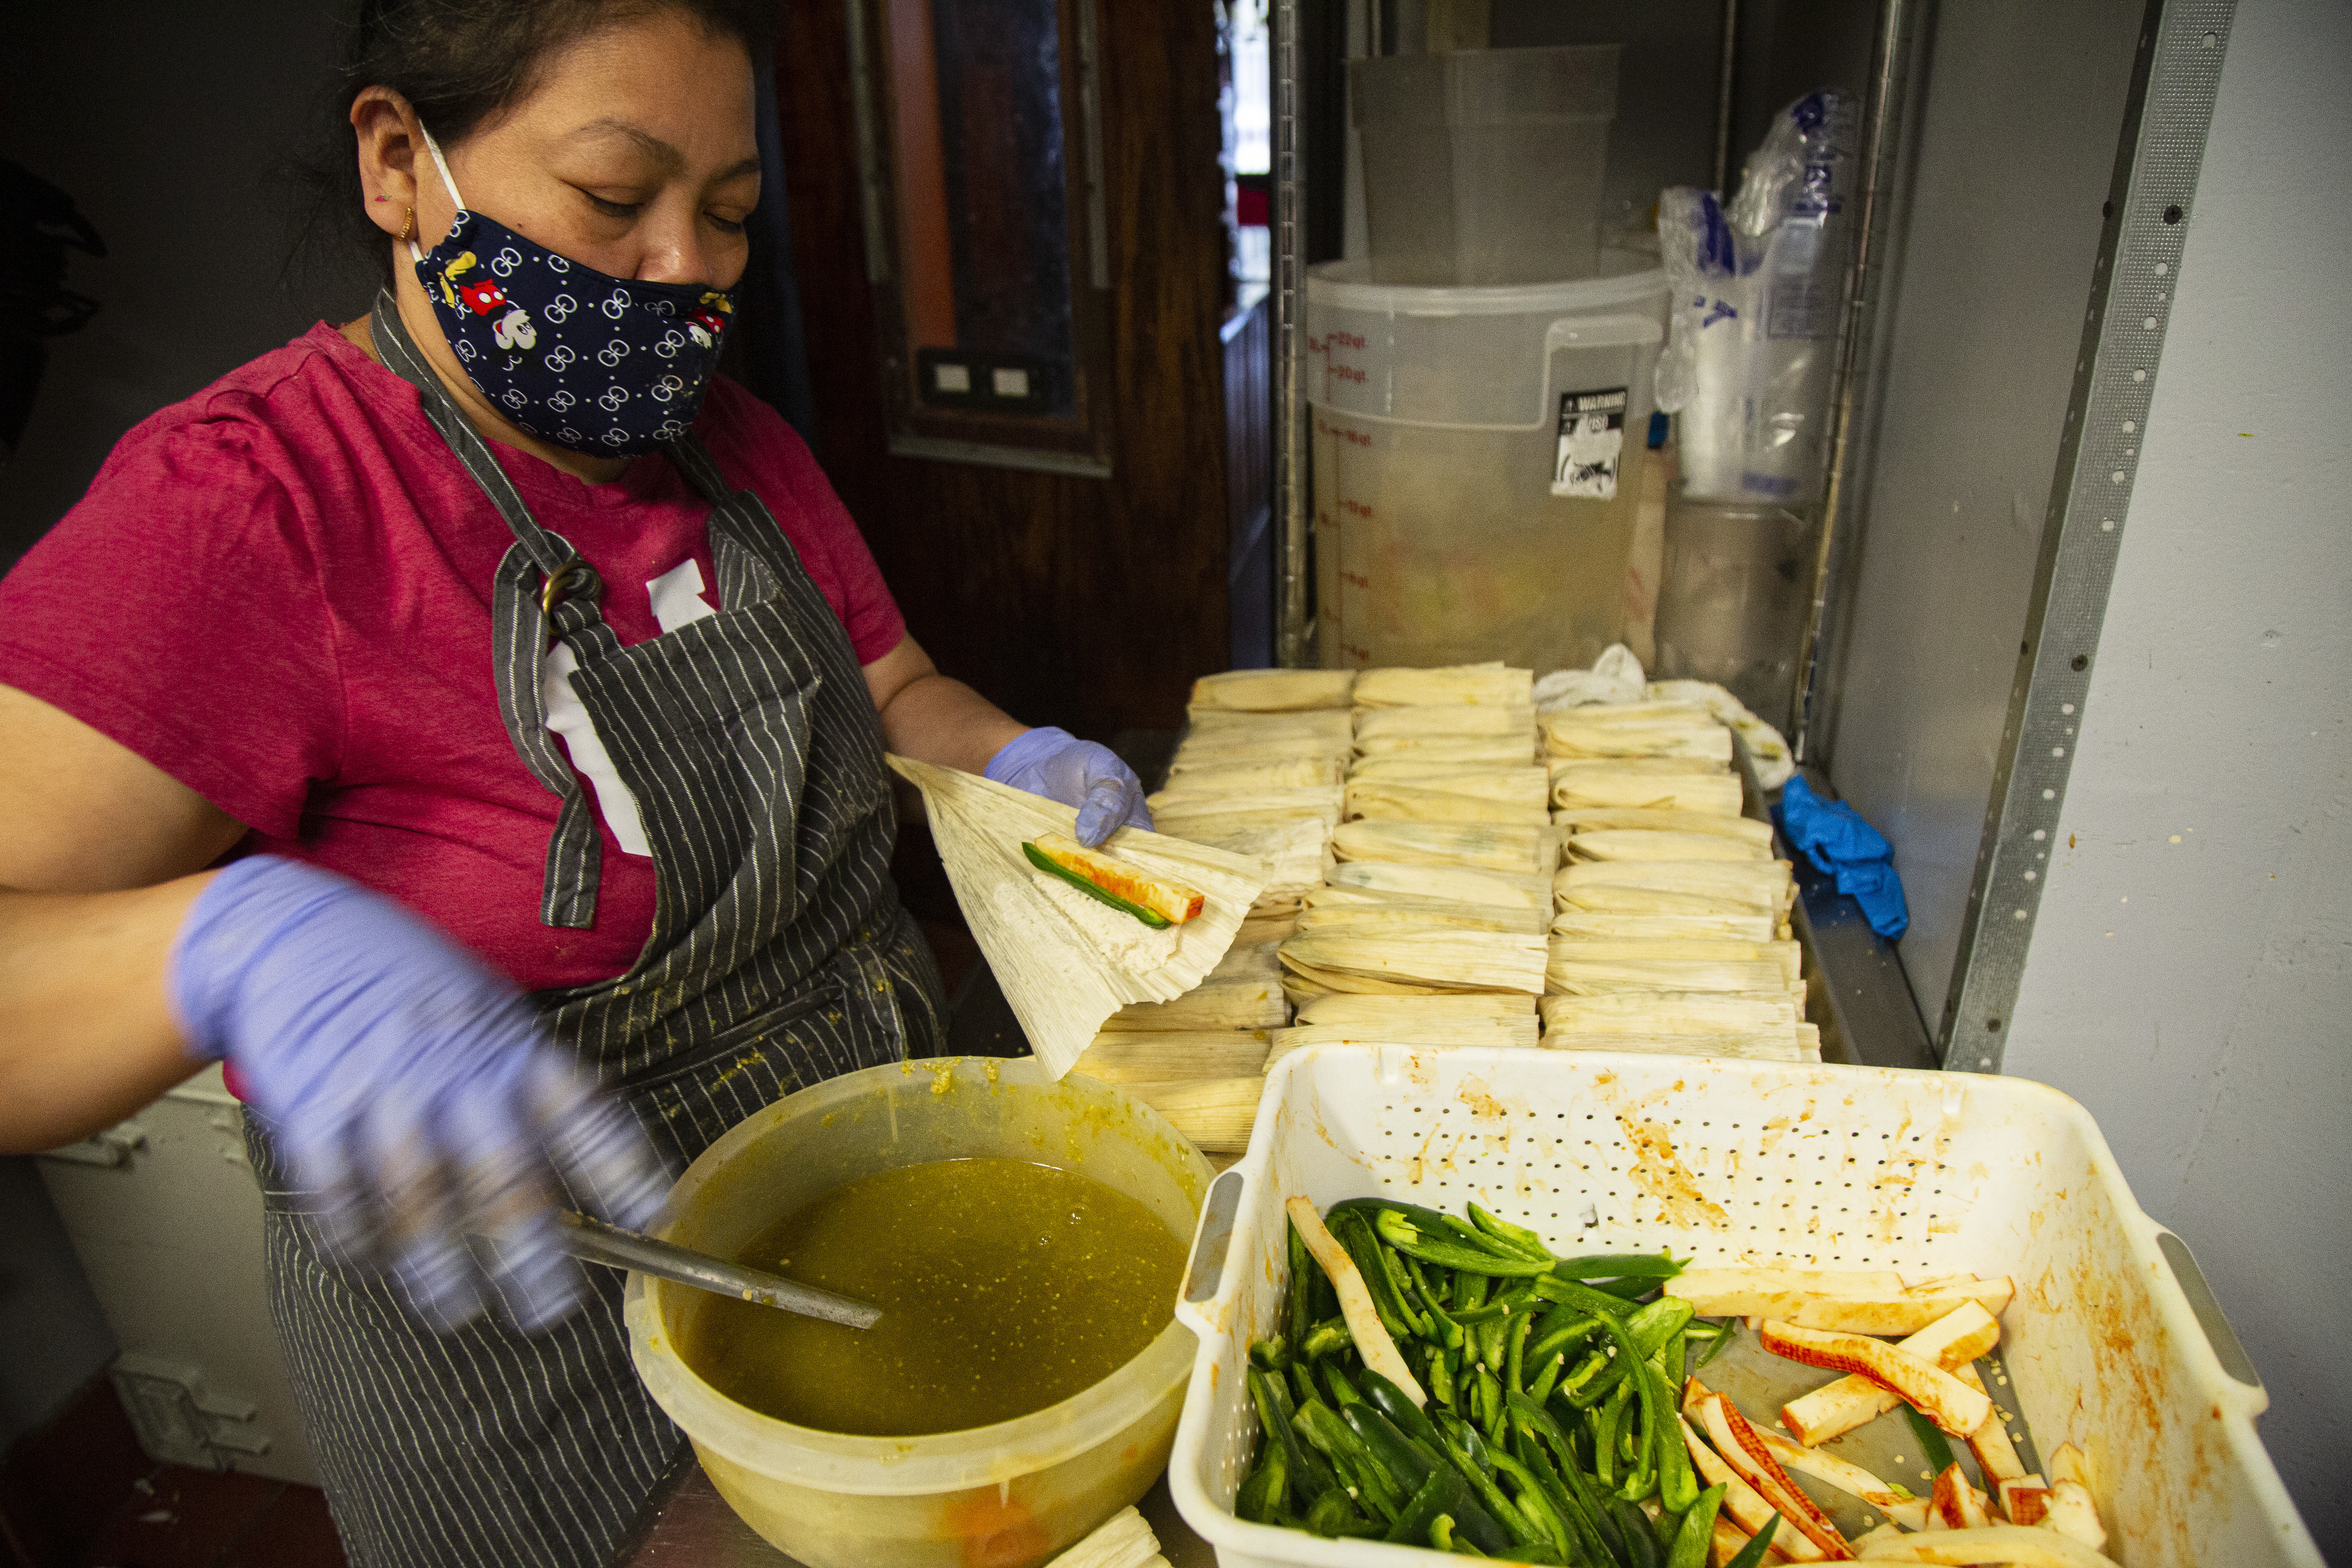 An employee adds sauce and peppers and cheese to tamale dough at restaurant Tamale Guy at 2018 W. Chicago Avenue in Ukrainian Village last year during the coronavirus shutdown.